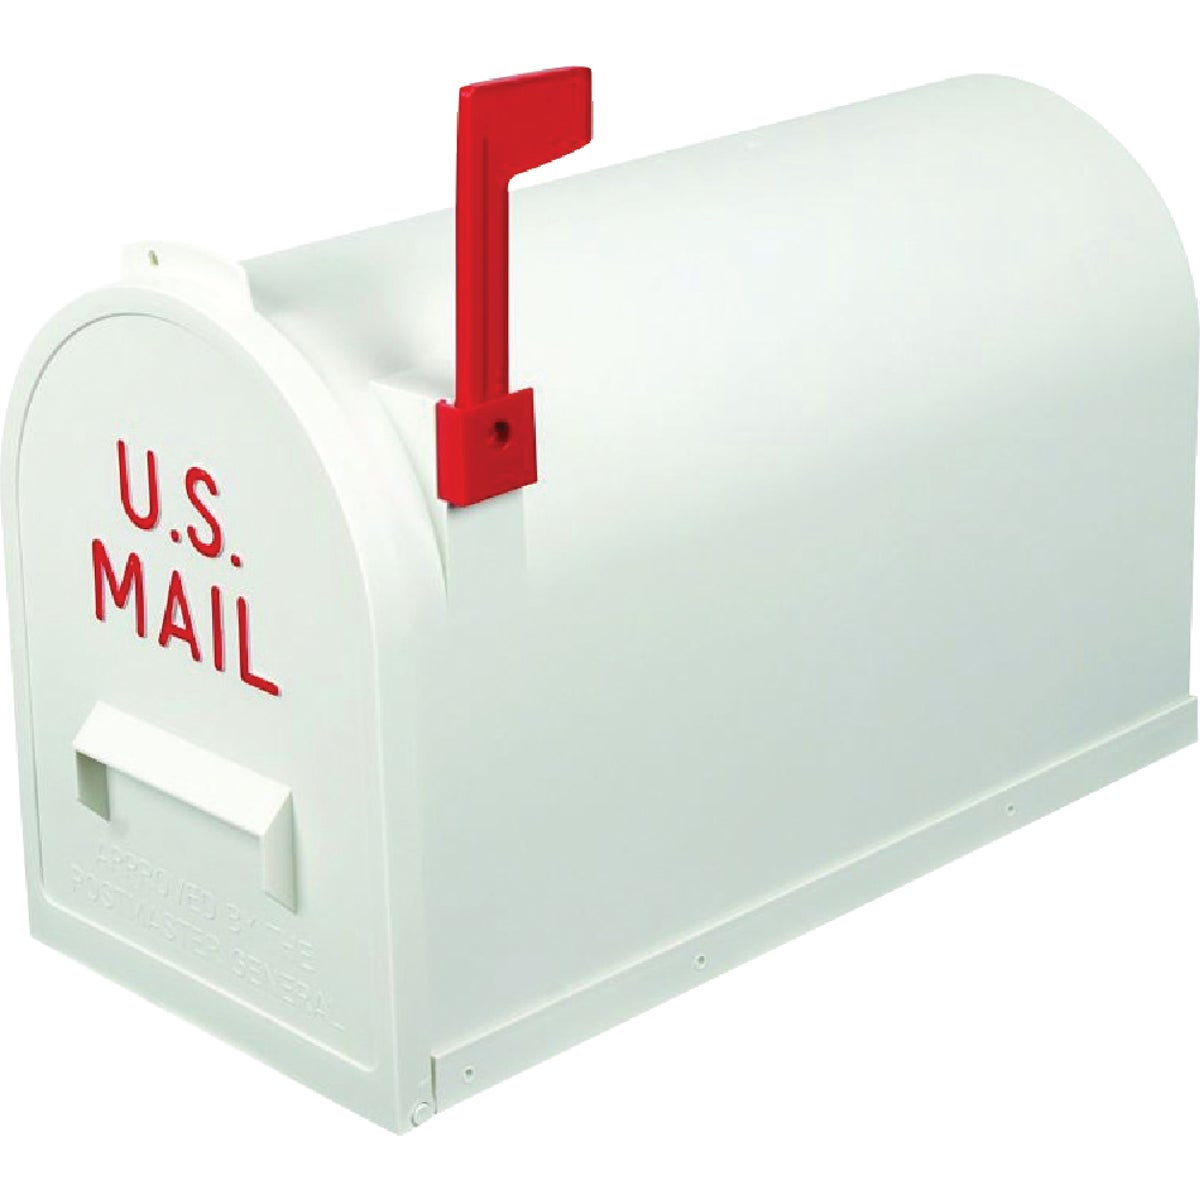 #2 WHITE POLY MAILBOX - TR7003WT by Flambeau Products Co